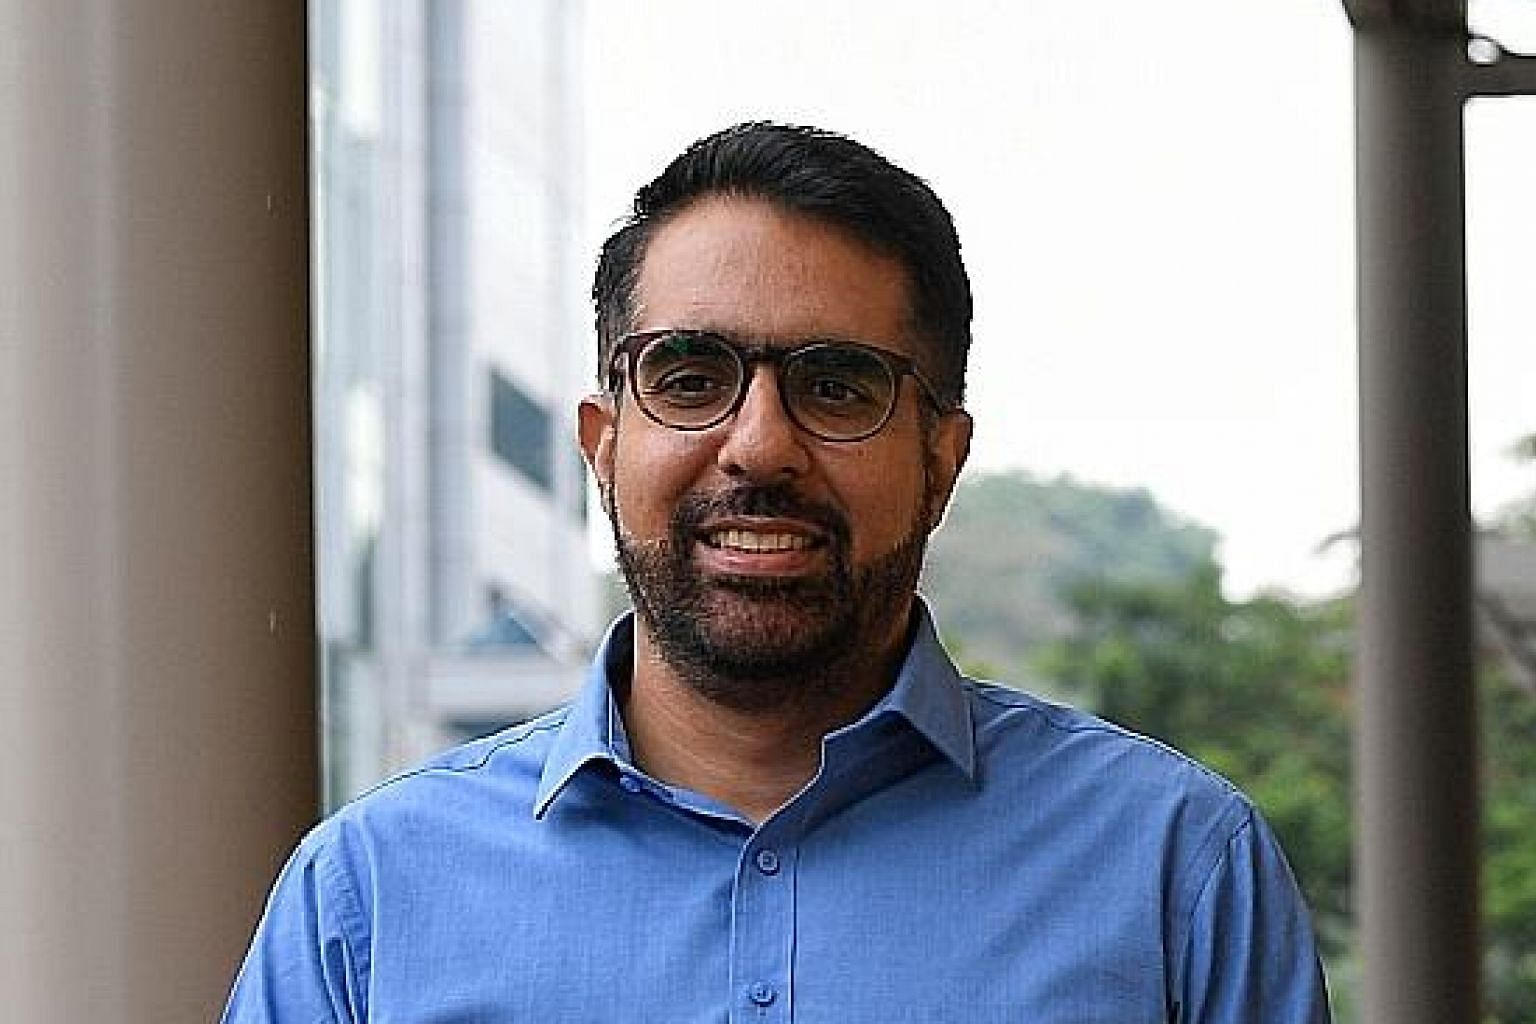 Mr Pritam Singh's first major task will be to lead the Workers' Party in the next general election.